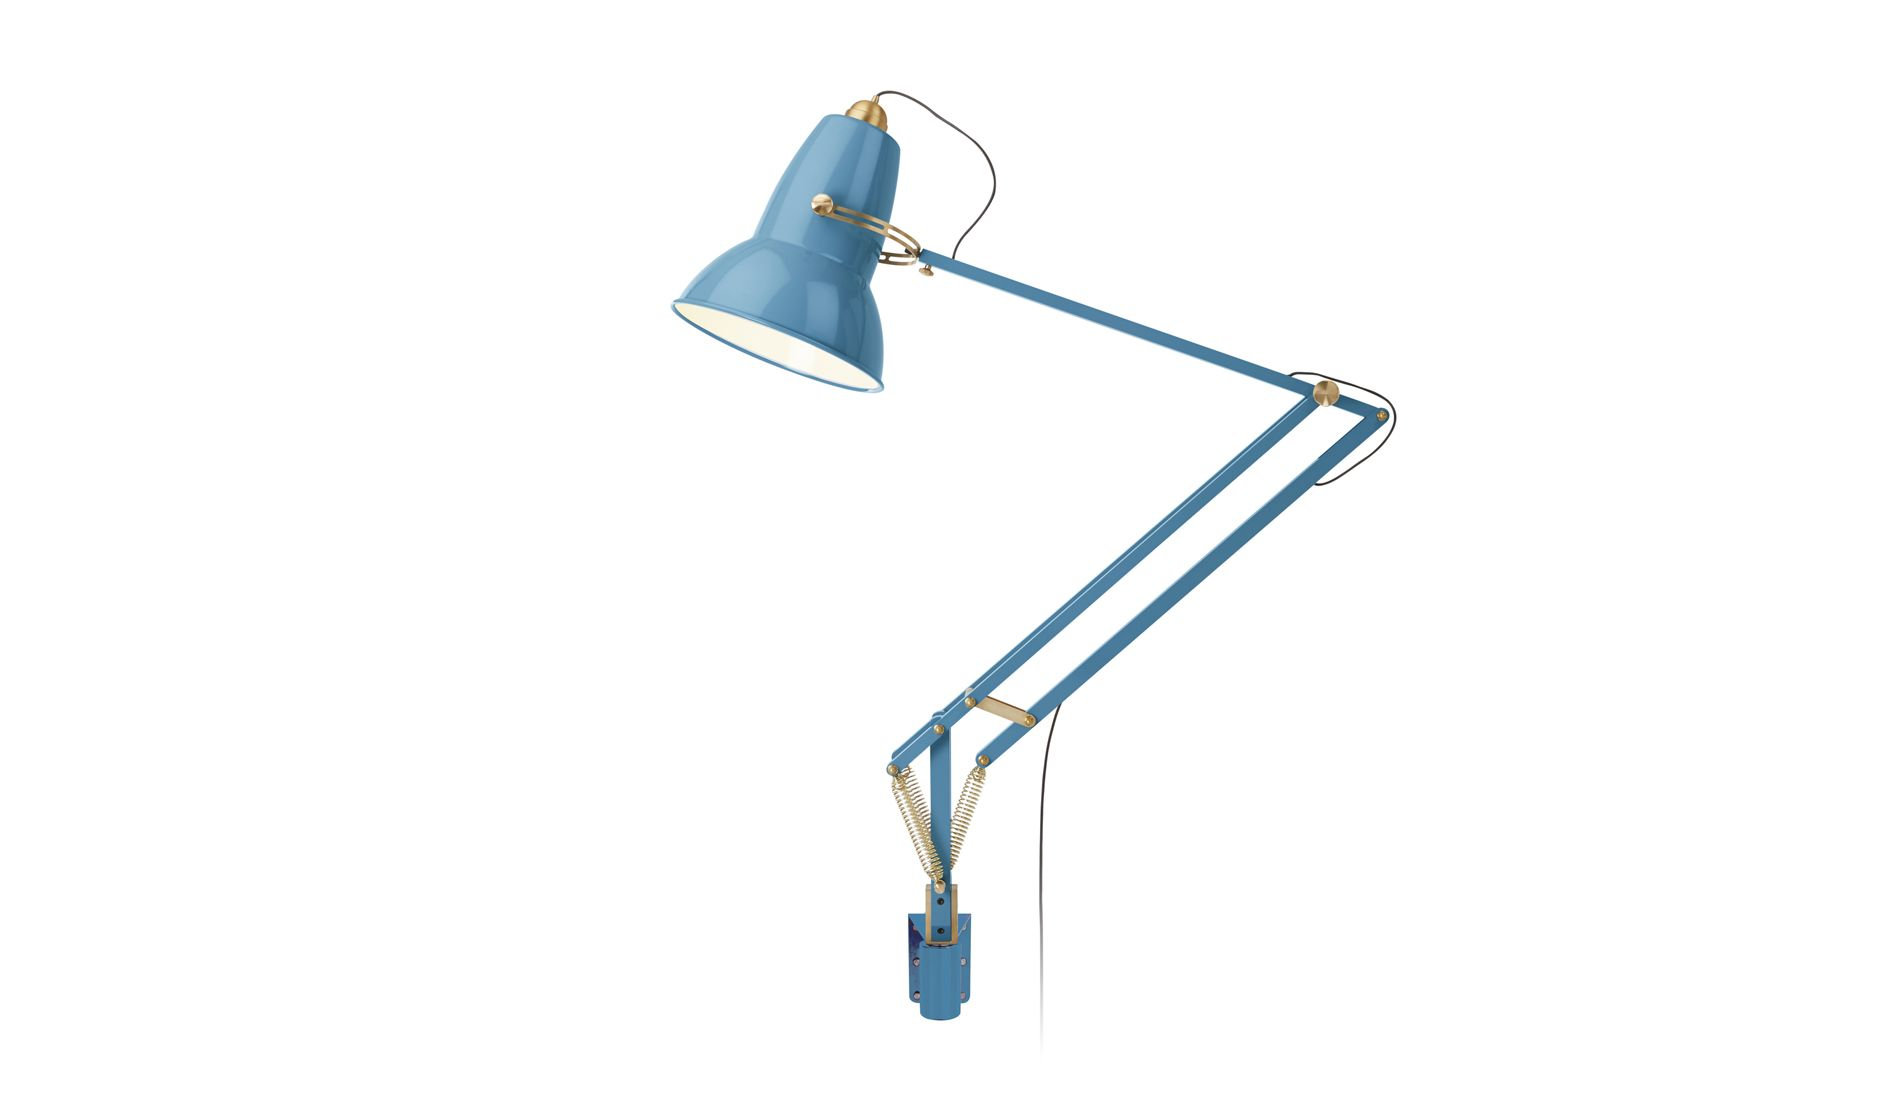 Nástěnná lampa Original 1227 Giant Messing Stau Blue